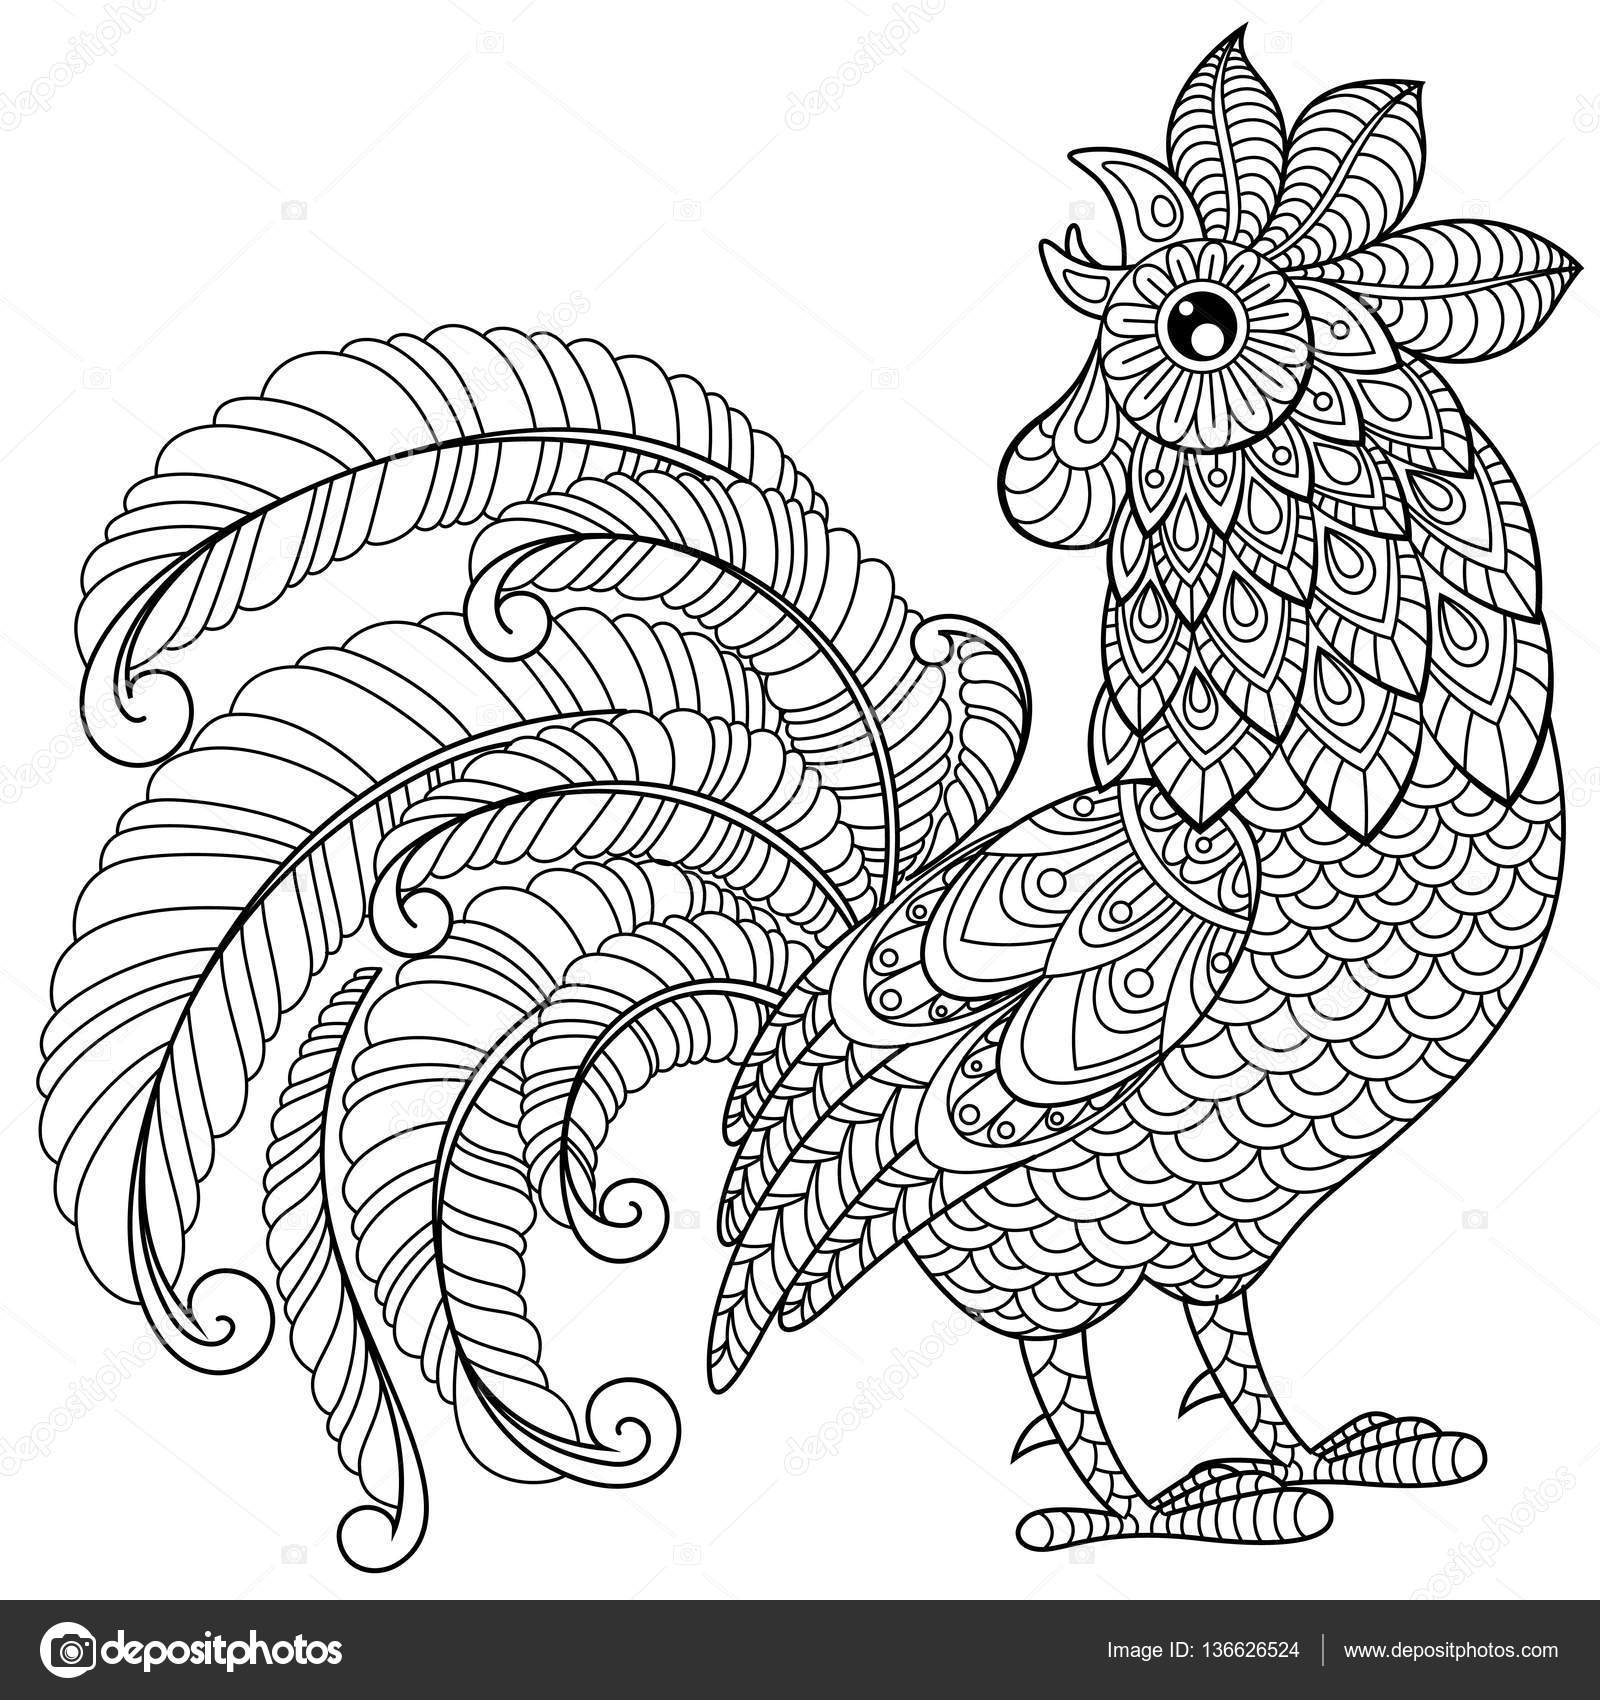 Symbole de la chinoise nouvel an 2017 Coloriage adulte anti stress